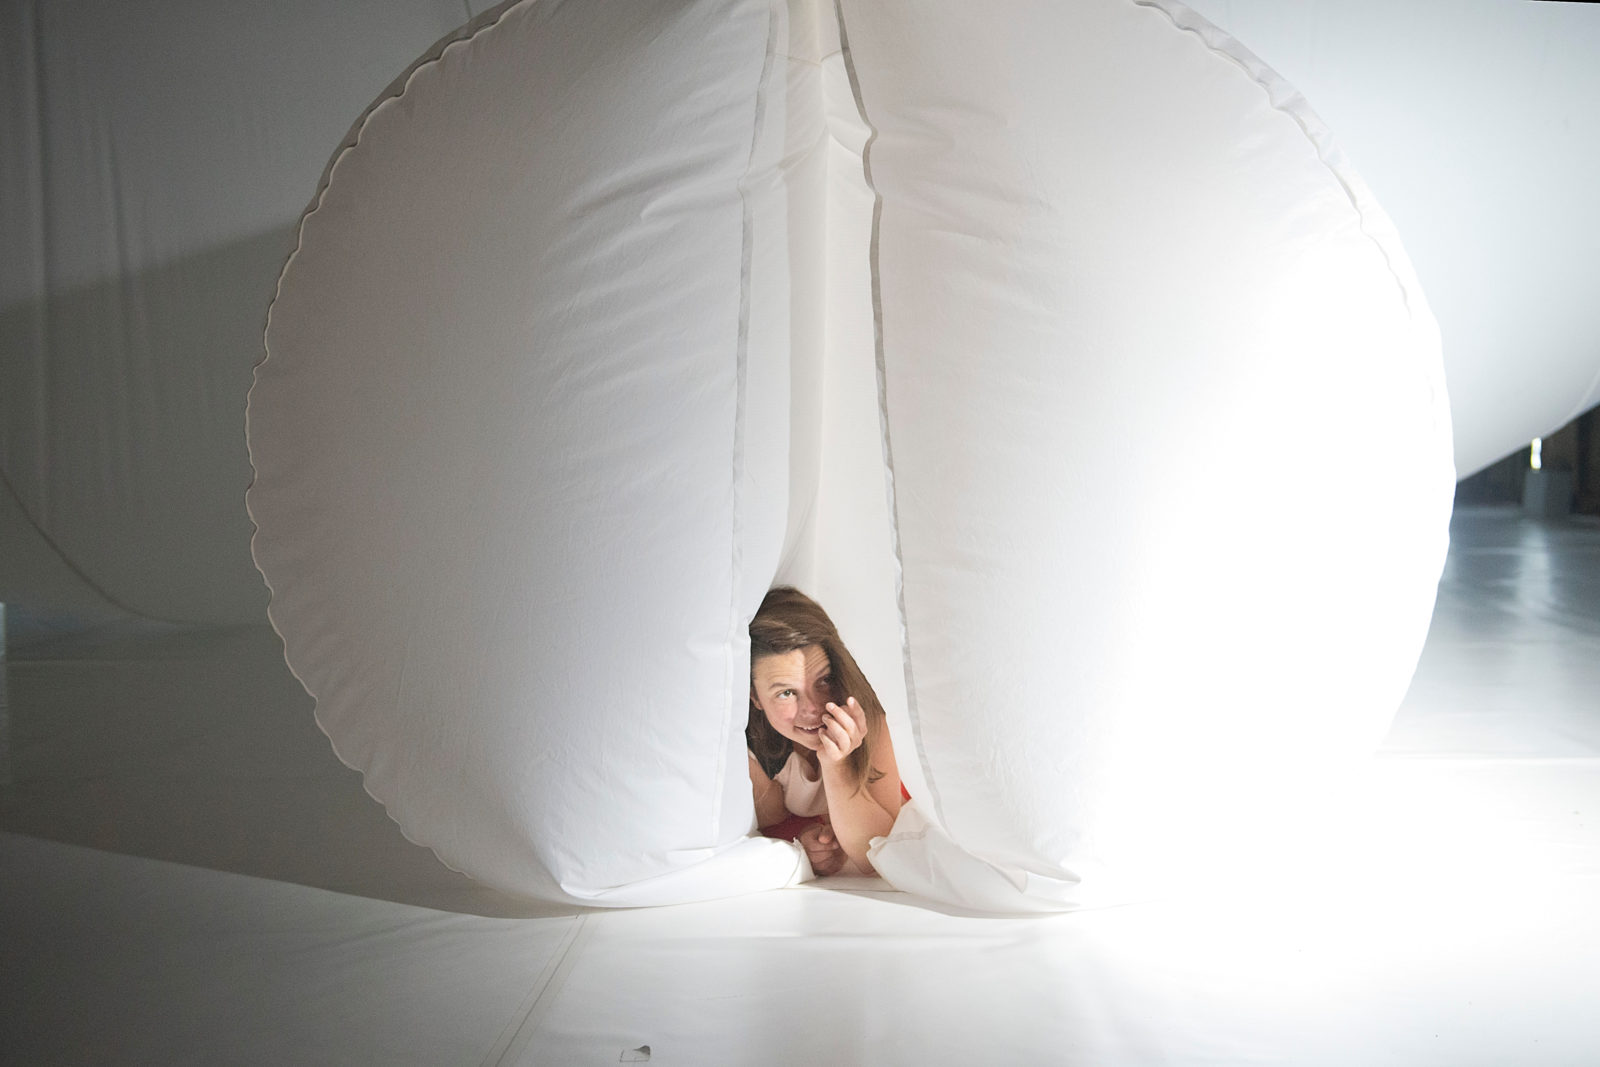 A girl lies smiling on the floor, surround by a giant white blob